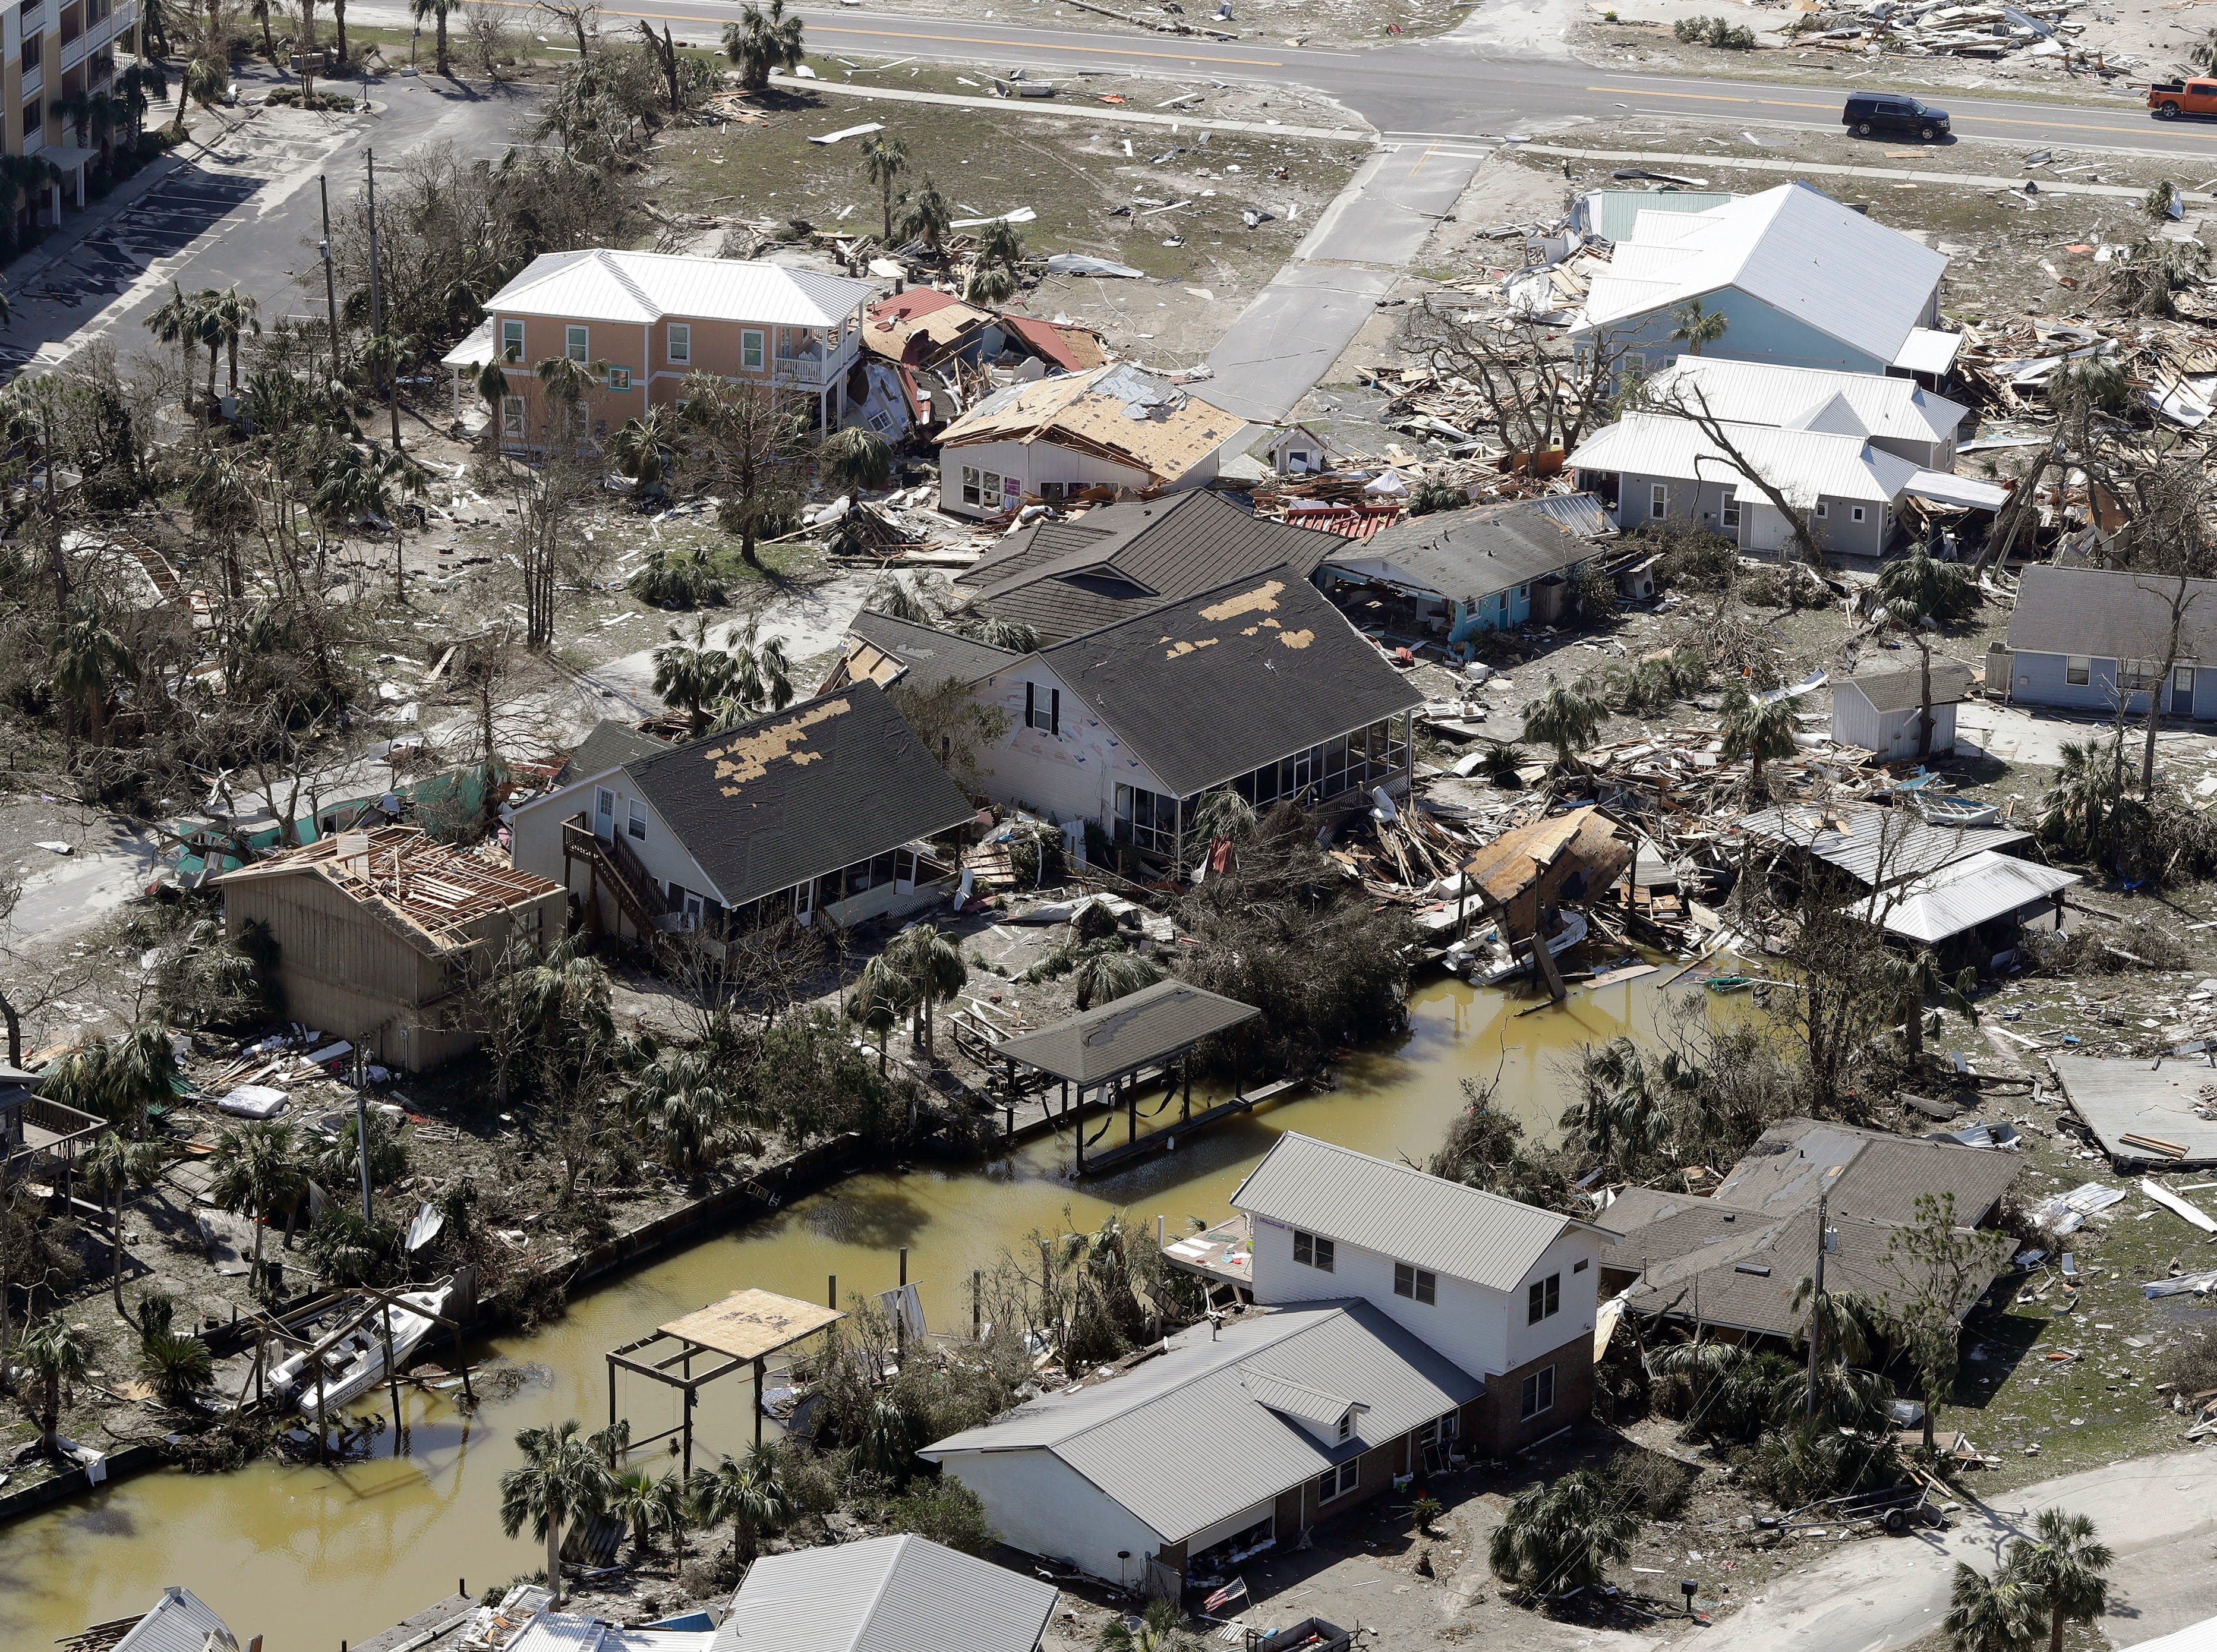 MEXICO BEACH, FL - OCTOBER 11: Debris from homes destroyed by Hurricane Michael litters the ground on October 11, 2018, in Mexico Beach, Florida. The hurricane hit the panhandle area with category 4 winds causing major damage. (Photo by Chris O'Meara-Pool/Getty Images)